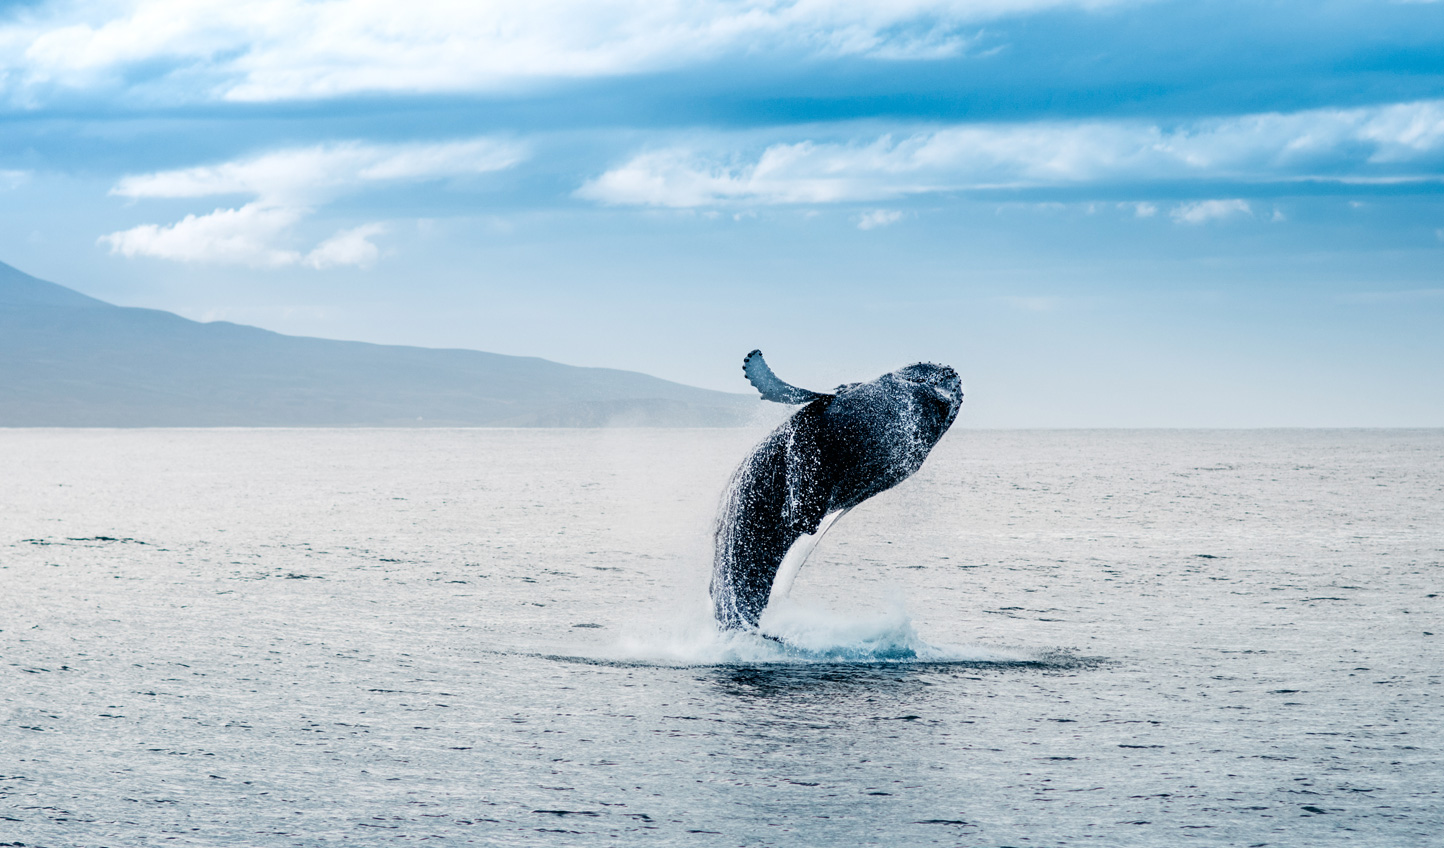 Soar above the oceans and catch sight of humpback whales breaching